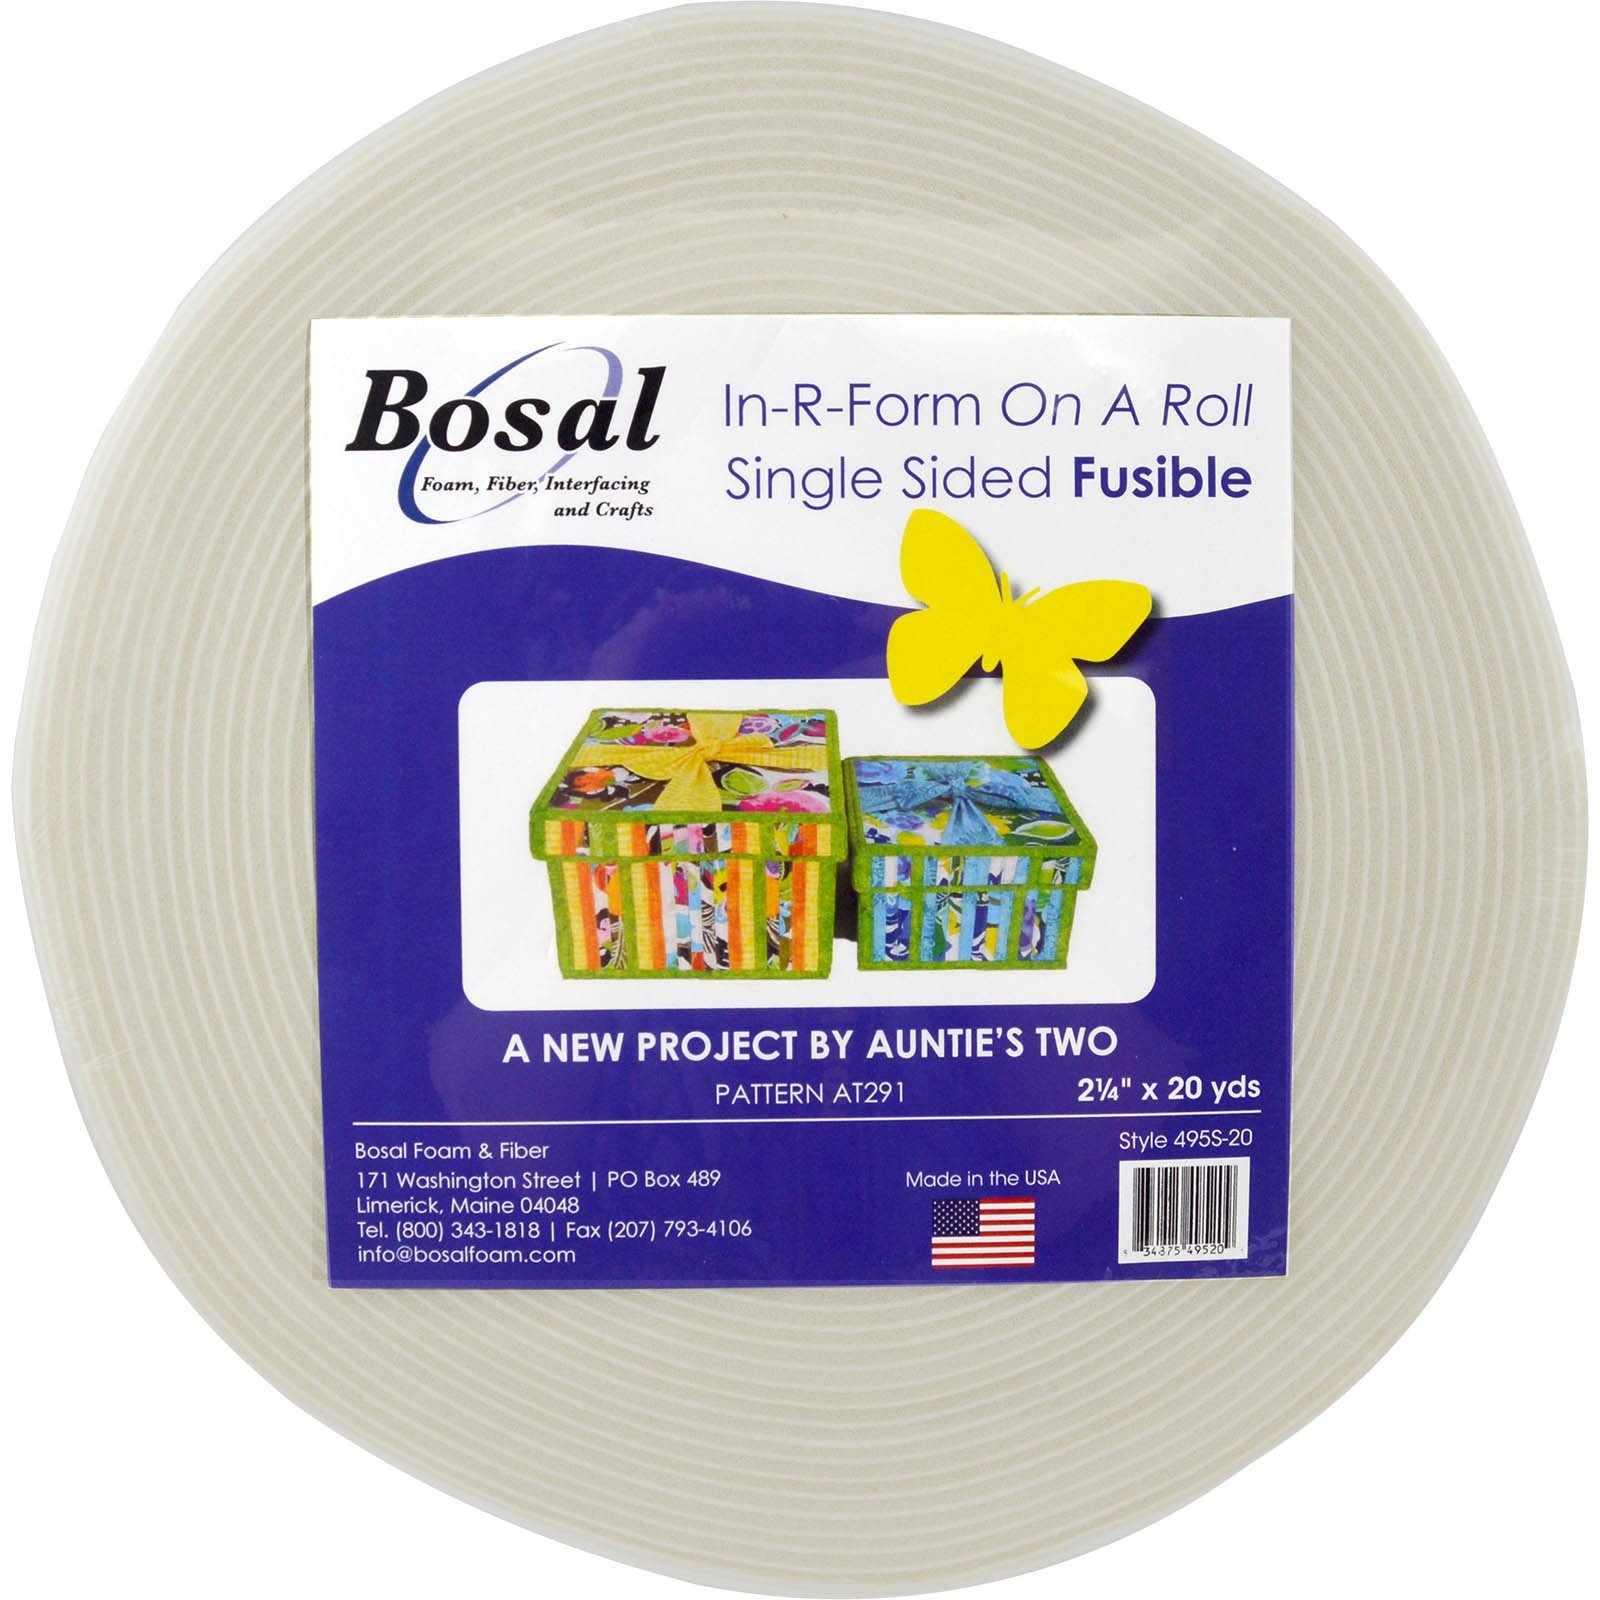 Bosal In-R-Form on a Roll Single Sided Fusible ( 2.25 x20 yds))